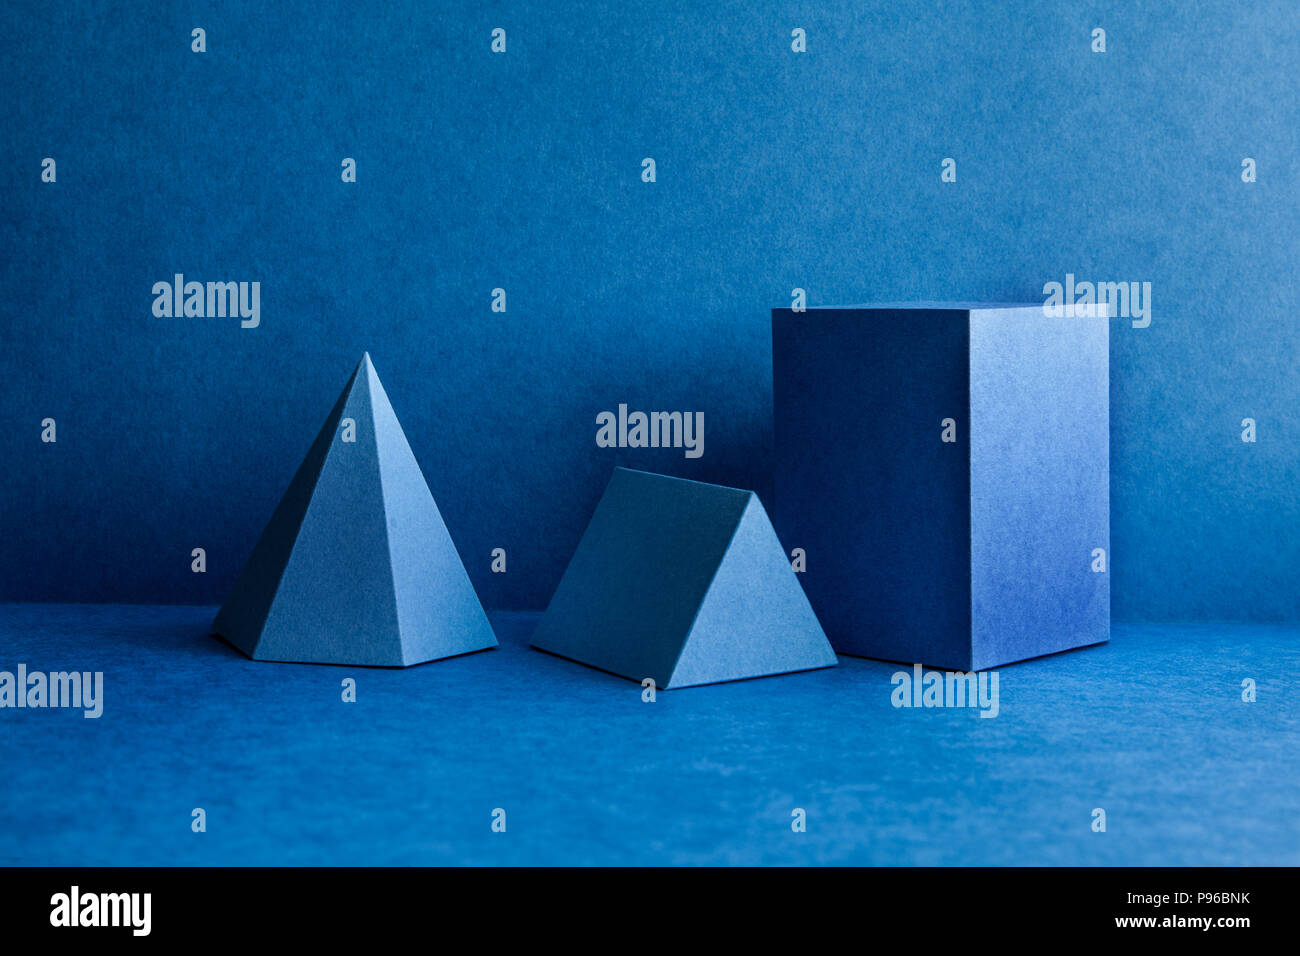 Geometrical figures still life composition. Three-dimensional prism pyramid tetrahedron rectangular cube objects on blue background. Platonic solids figures, simplicity concept photography. - Stock Image